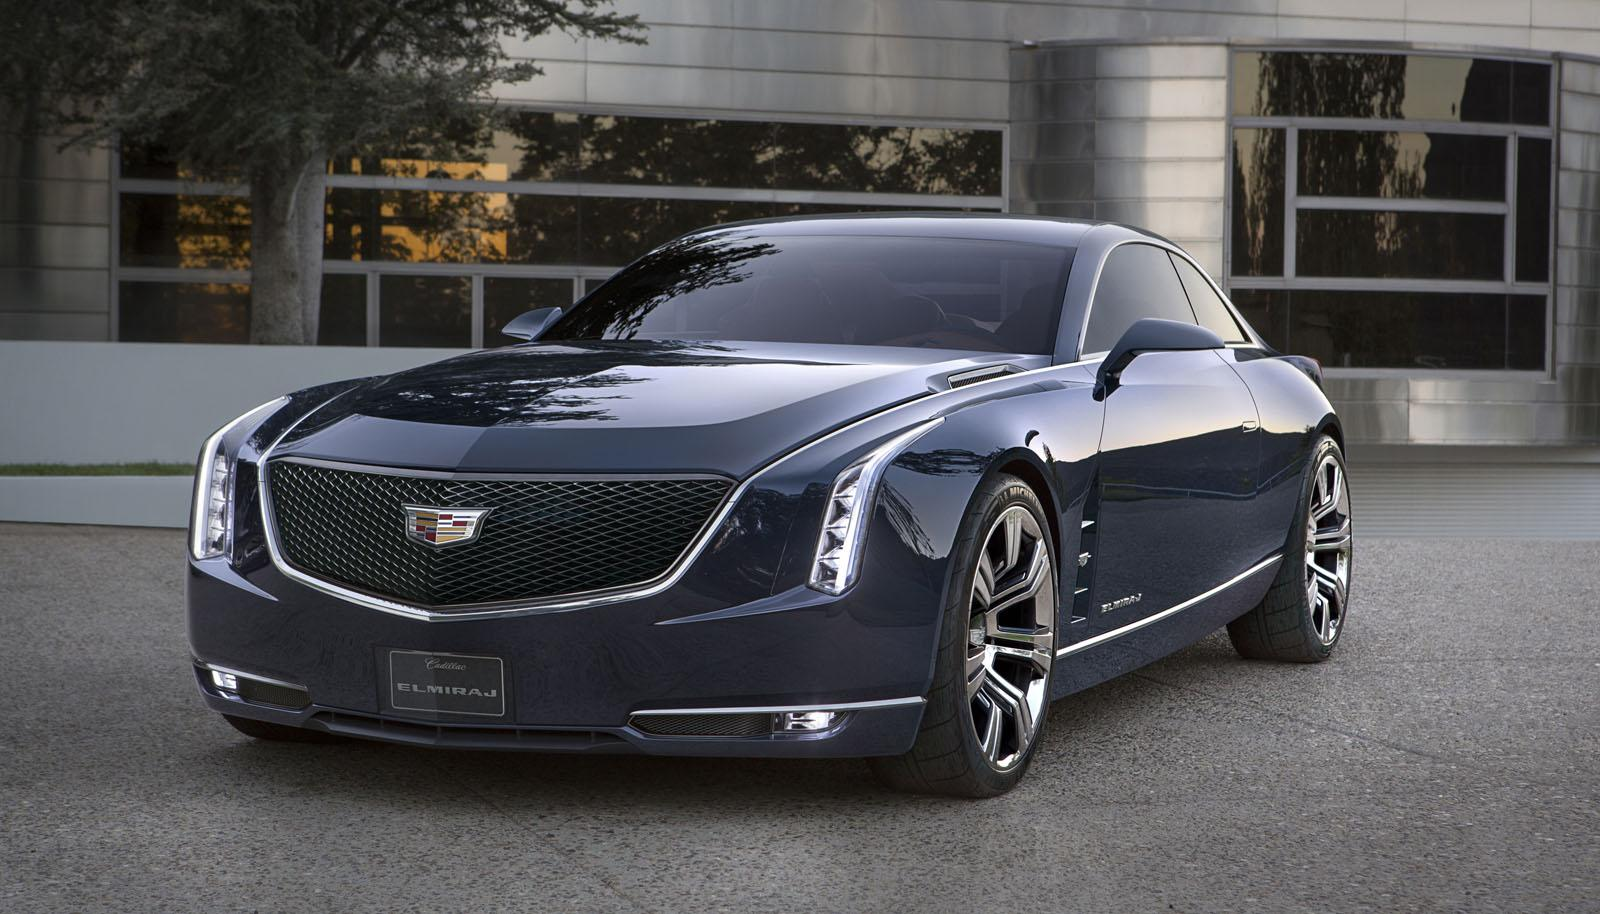 sedan v the for corvette a new cadillac cts speedhunters br family